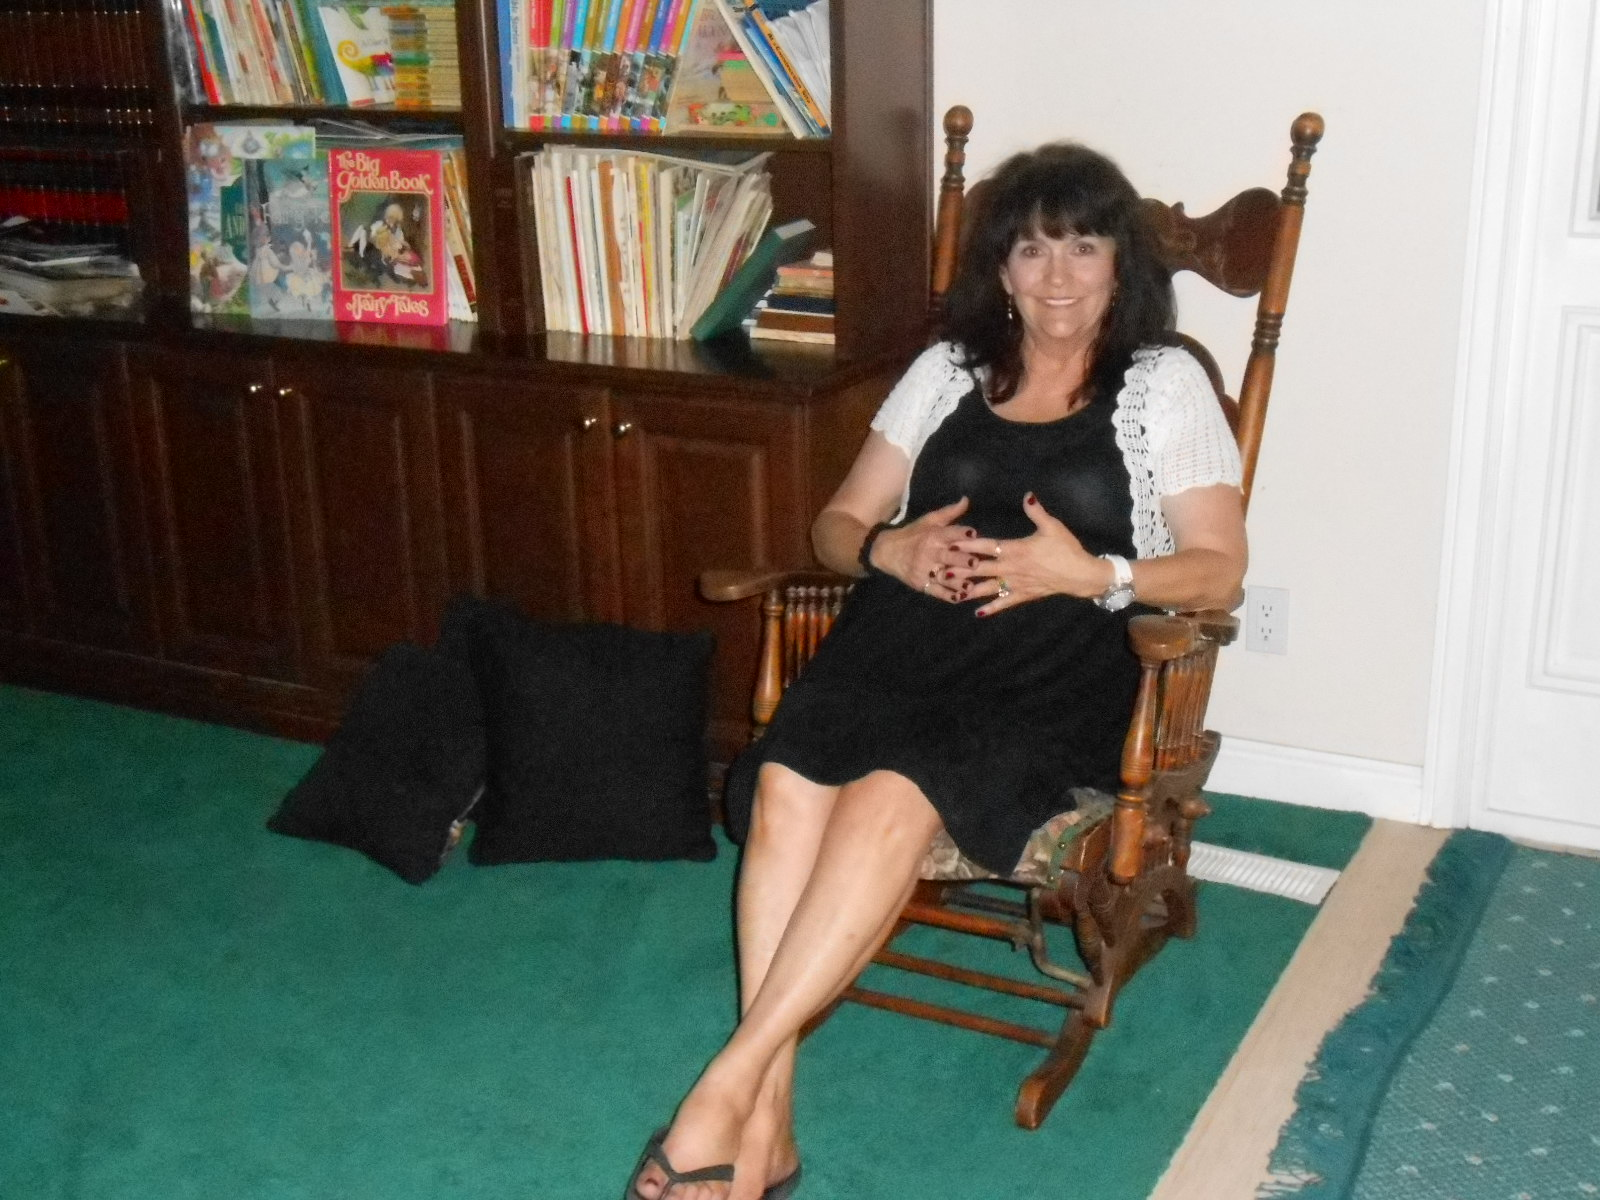 Aunt Priscilla Has A Rocking Chair Hydraulic Recline Barber The School Of Good Enough Wixom Keepsakes Part 3